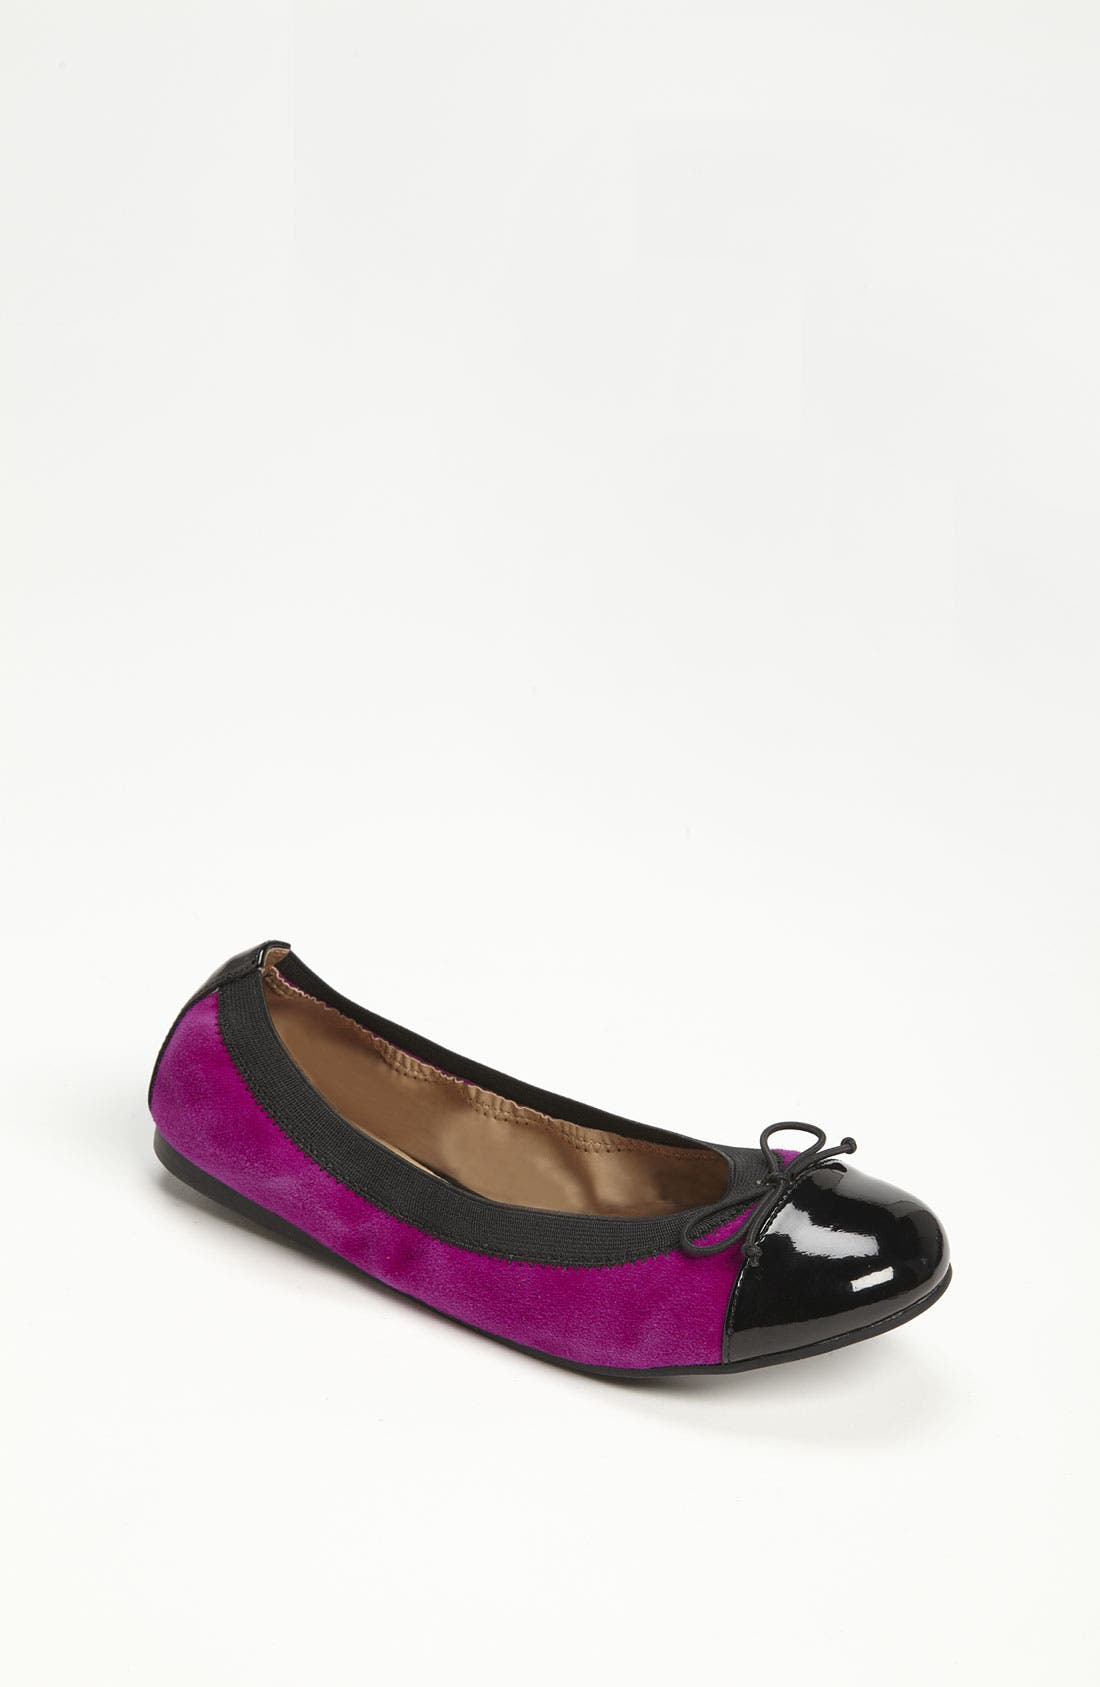 Main Image - BP. 'Mindy' Ballet Flat